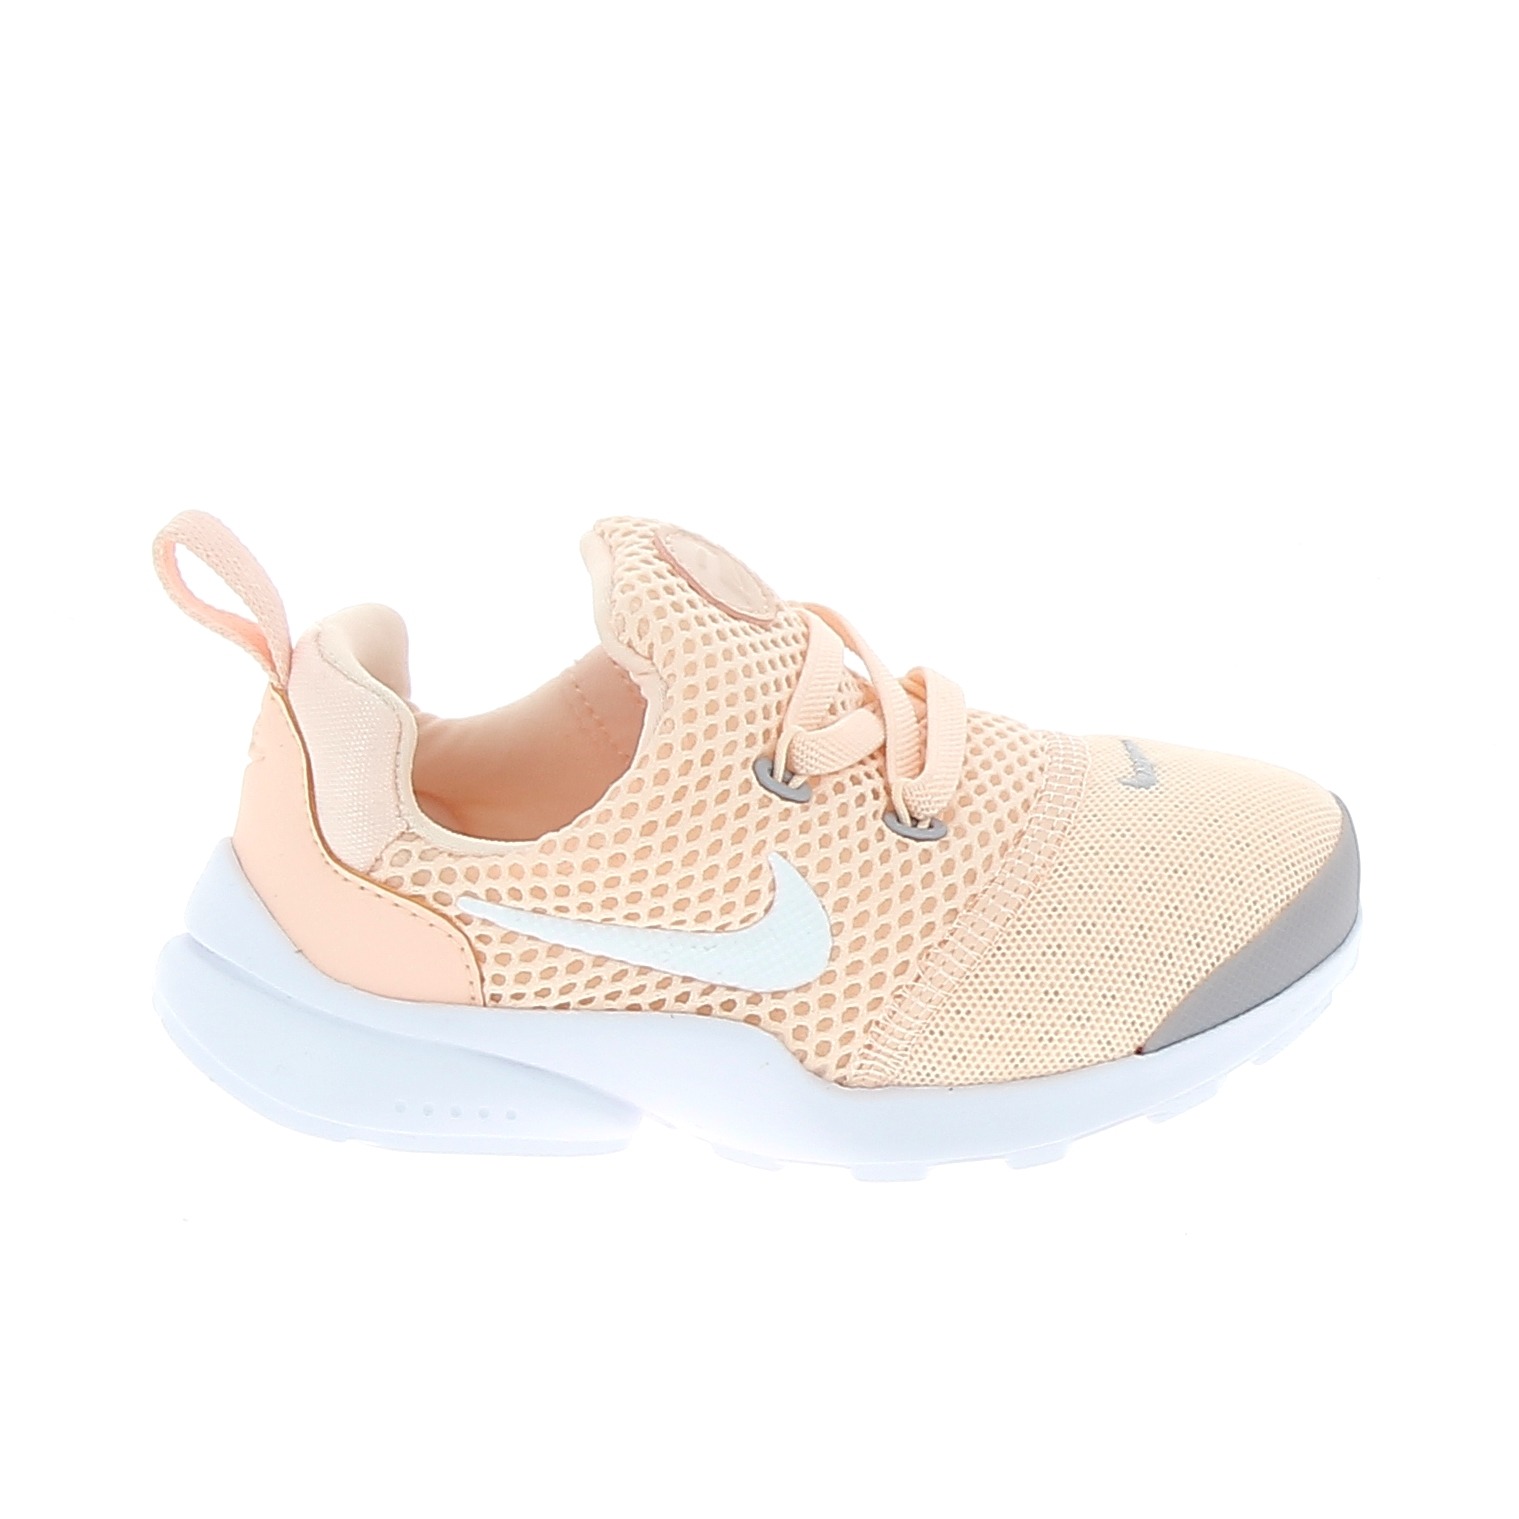 new product eae85 08ccc Chaussure bébé NIKE Presto Fly BB Rose